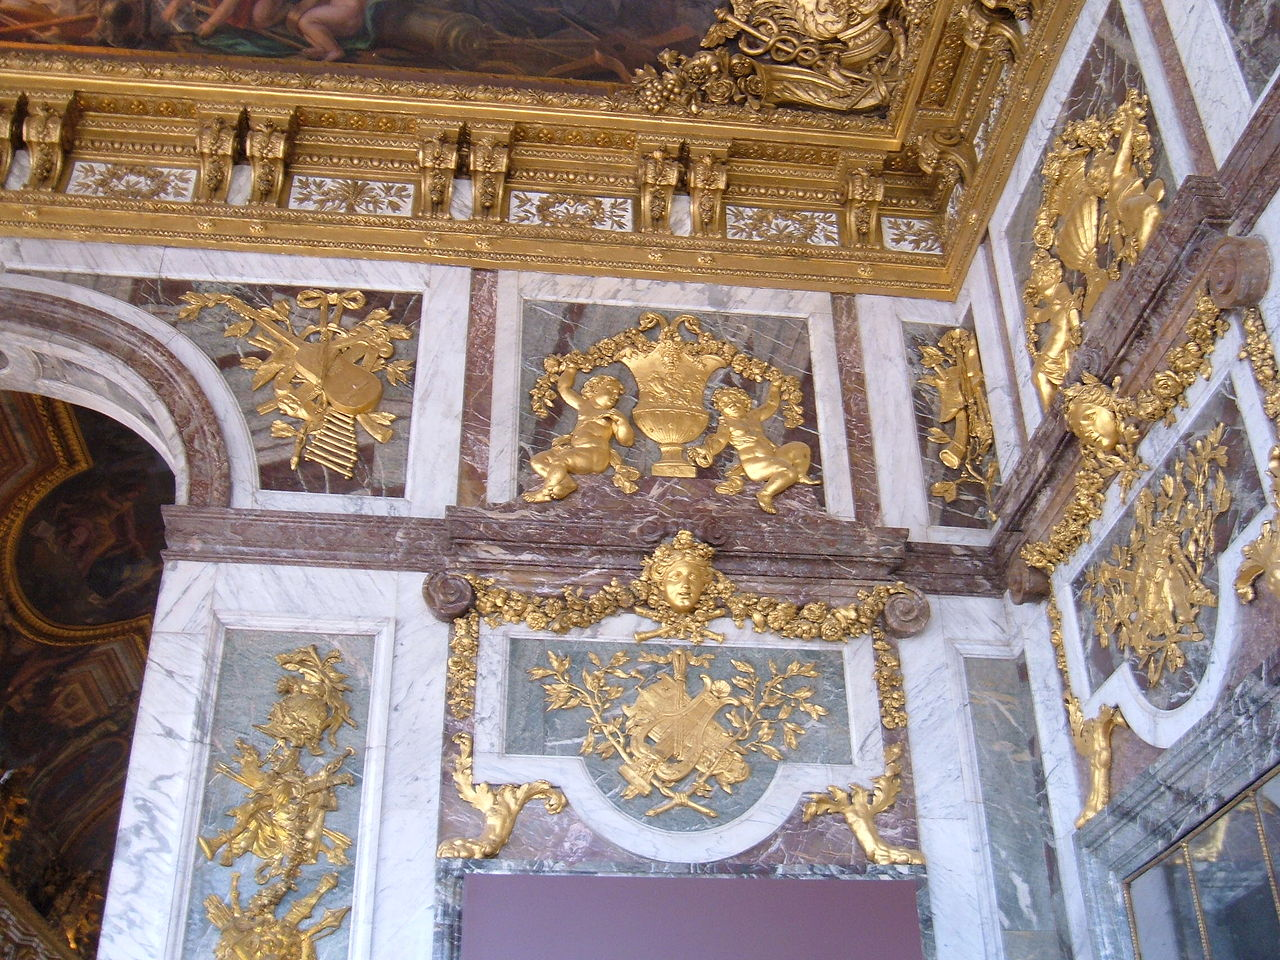 FileHall of Mirrors Palace of Versailles wall cornerJPG